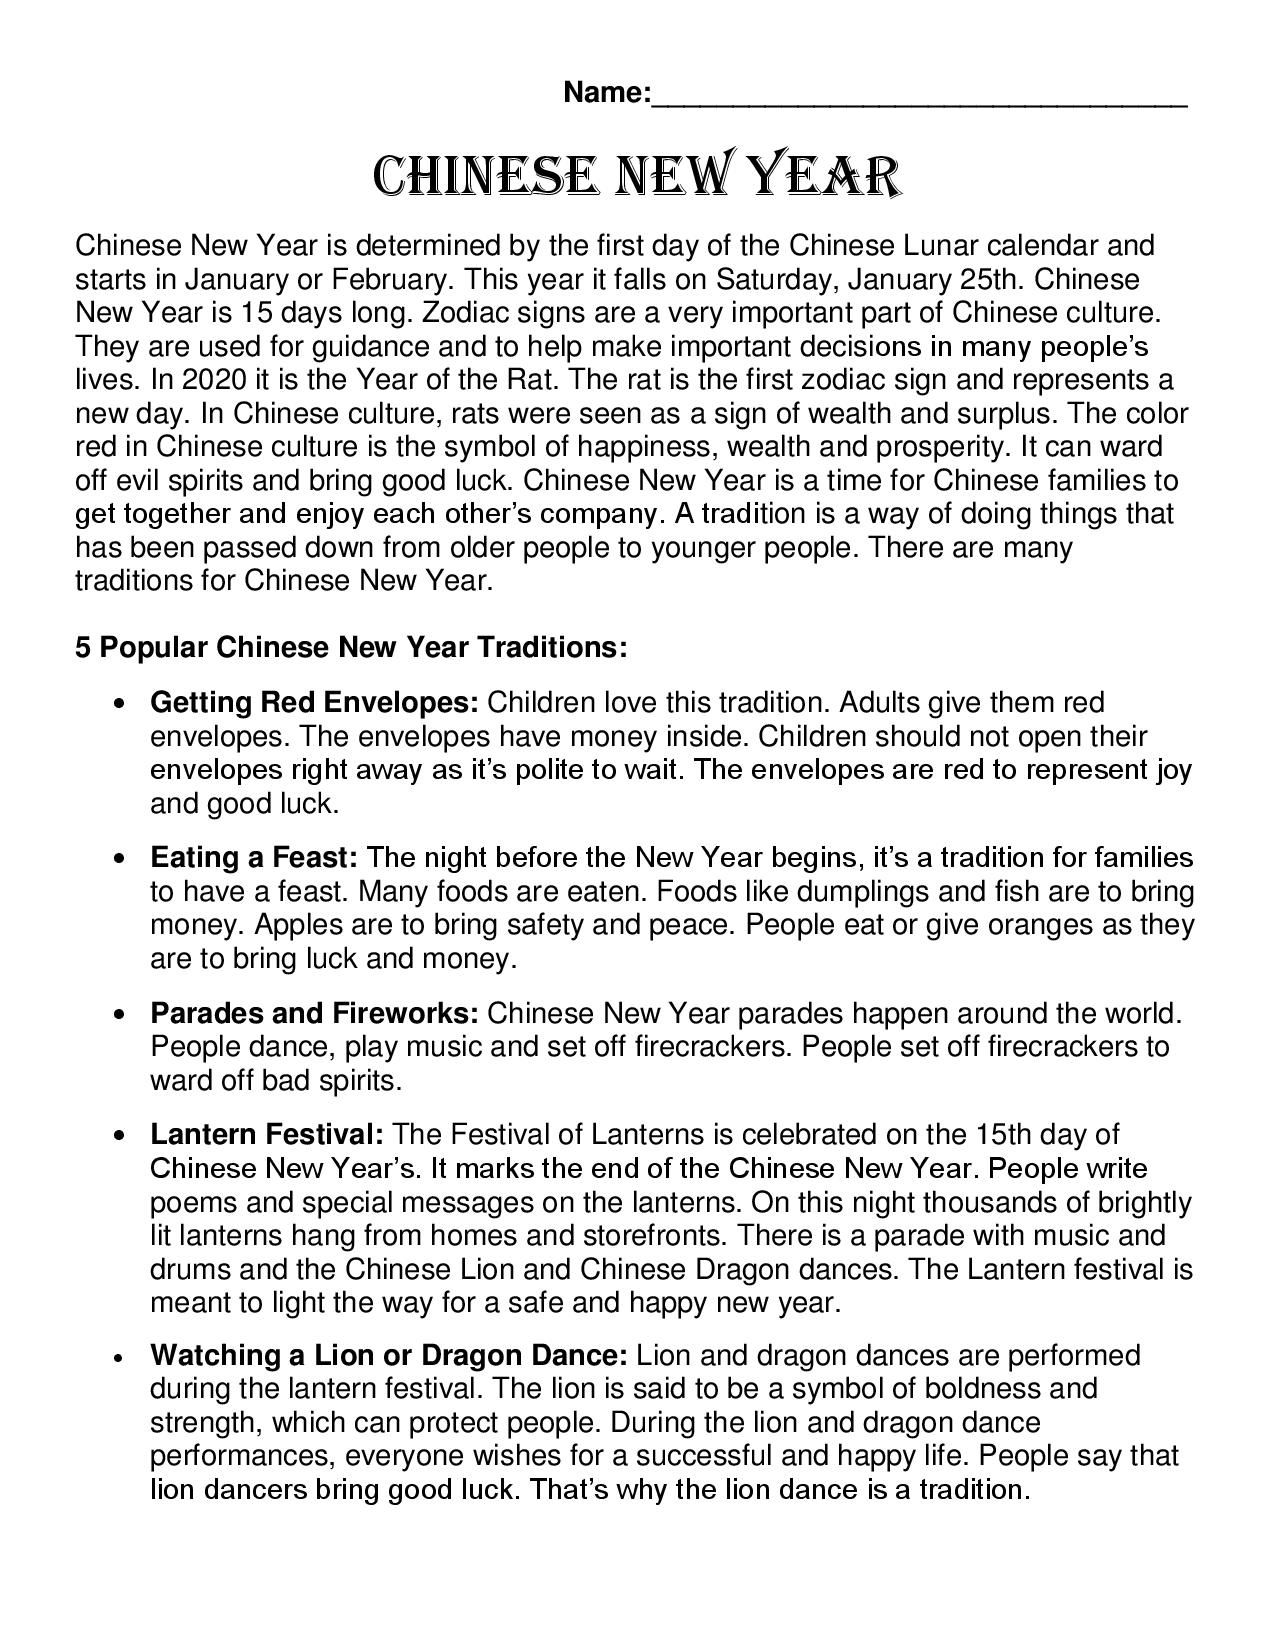 Chinese New Year 2020 Comprehension Passage & Quiz